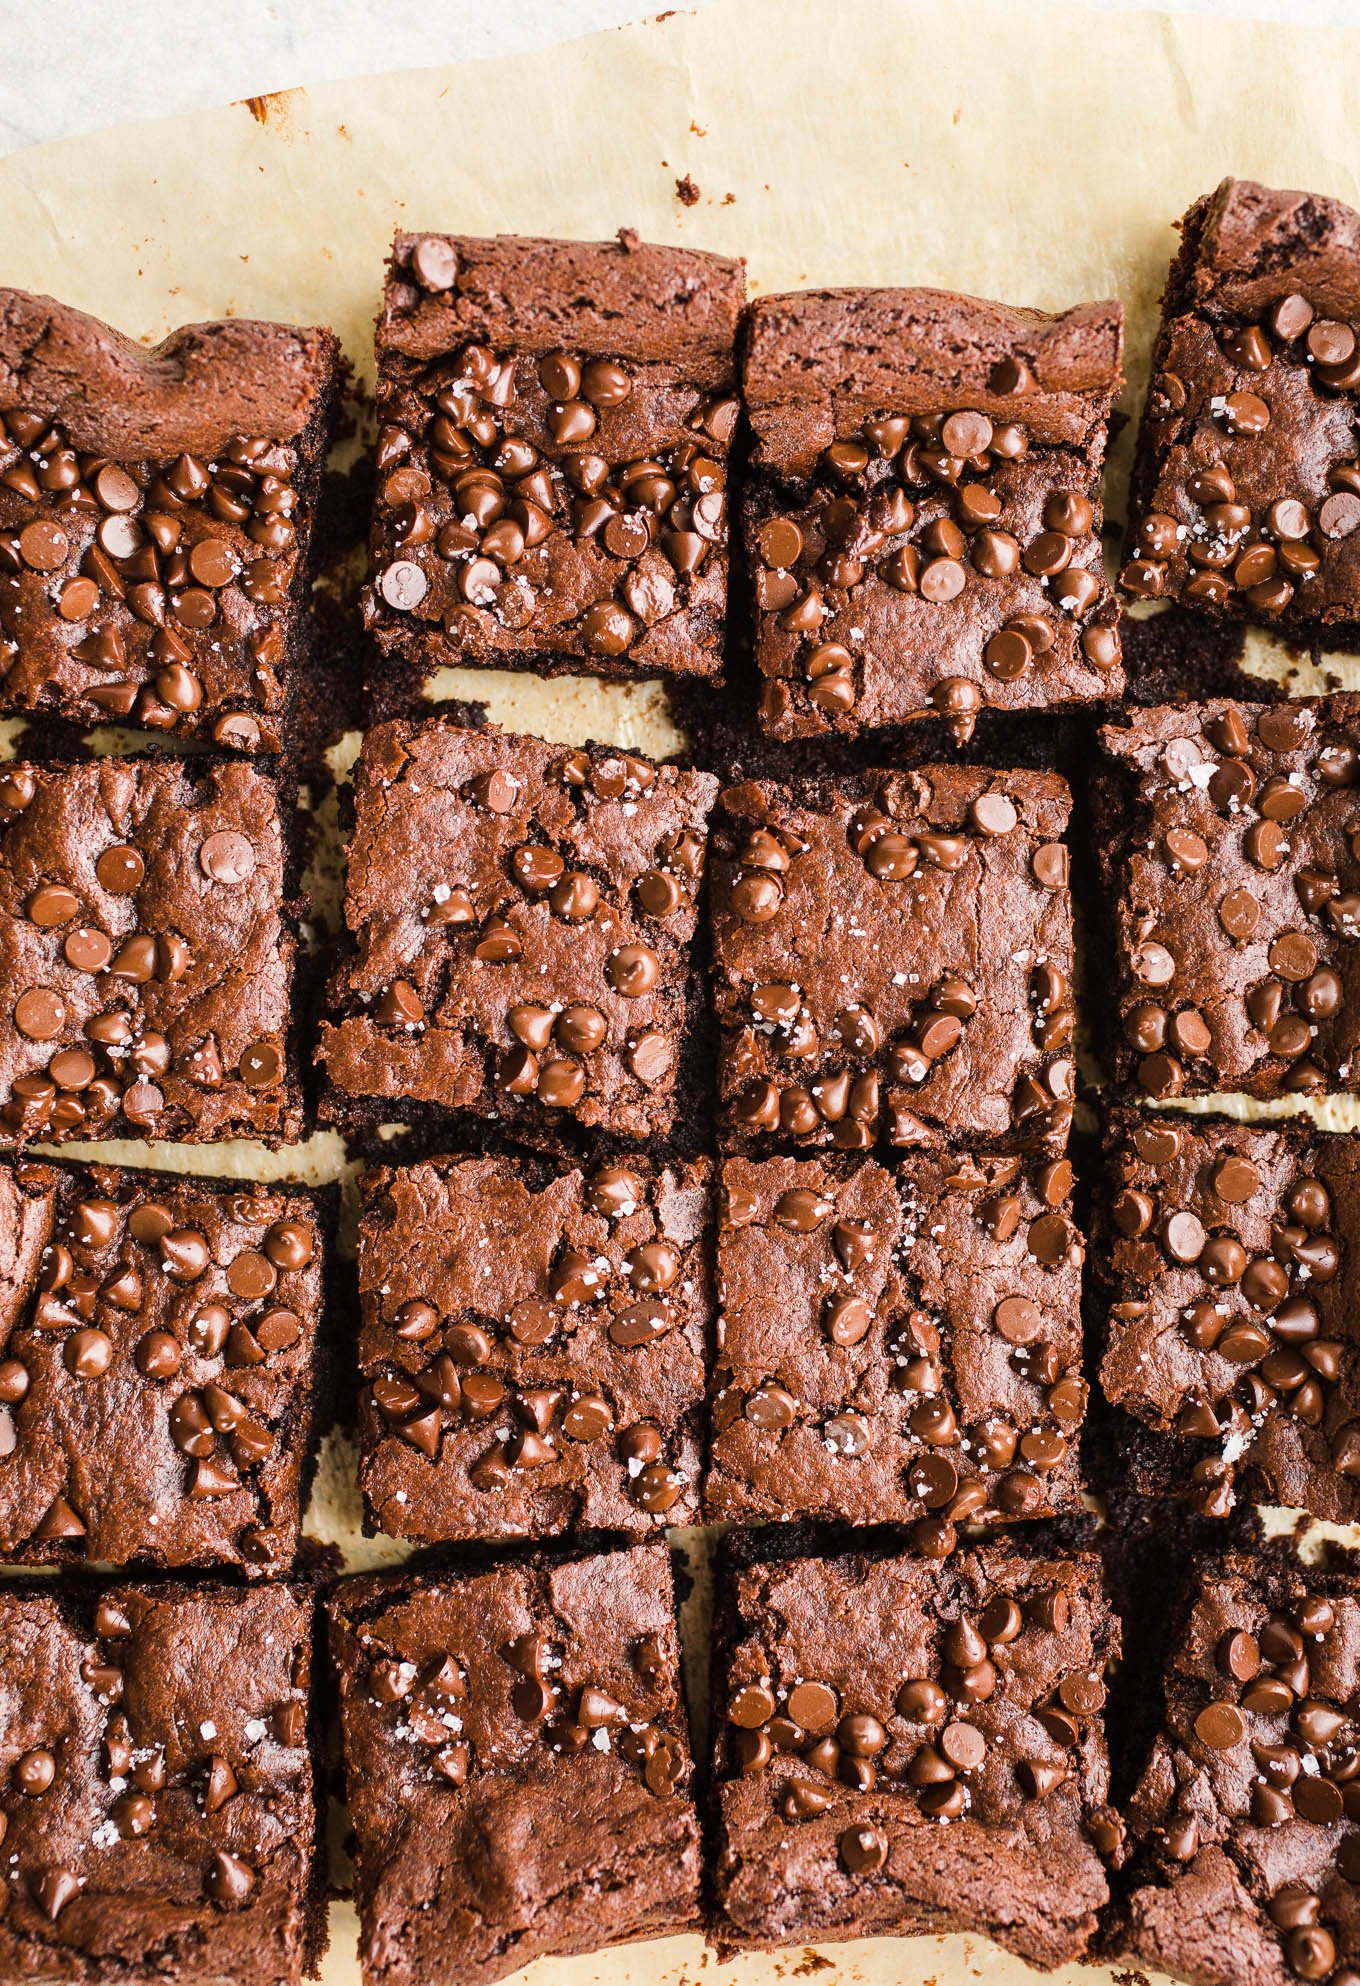 Vegan Tahini Brownies made with rich cocoa powder, tahini, maple syrup, chocolate chips, and topped with sea salt. Gluten-free.